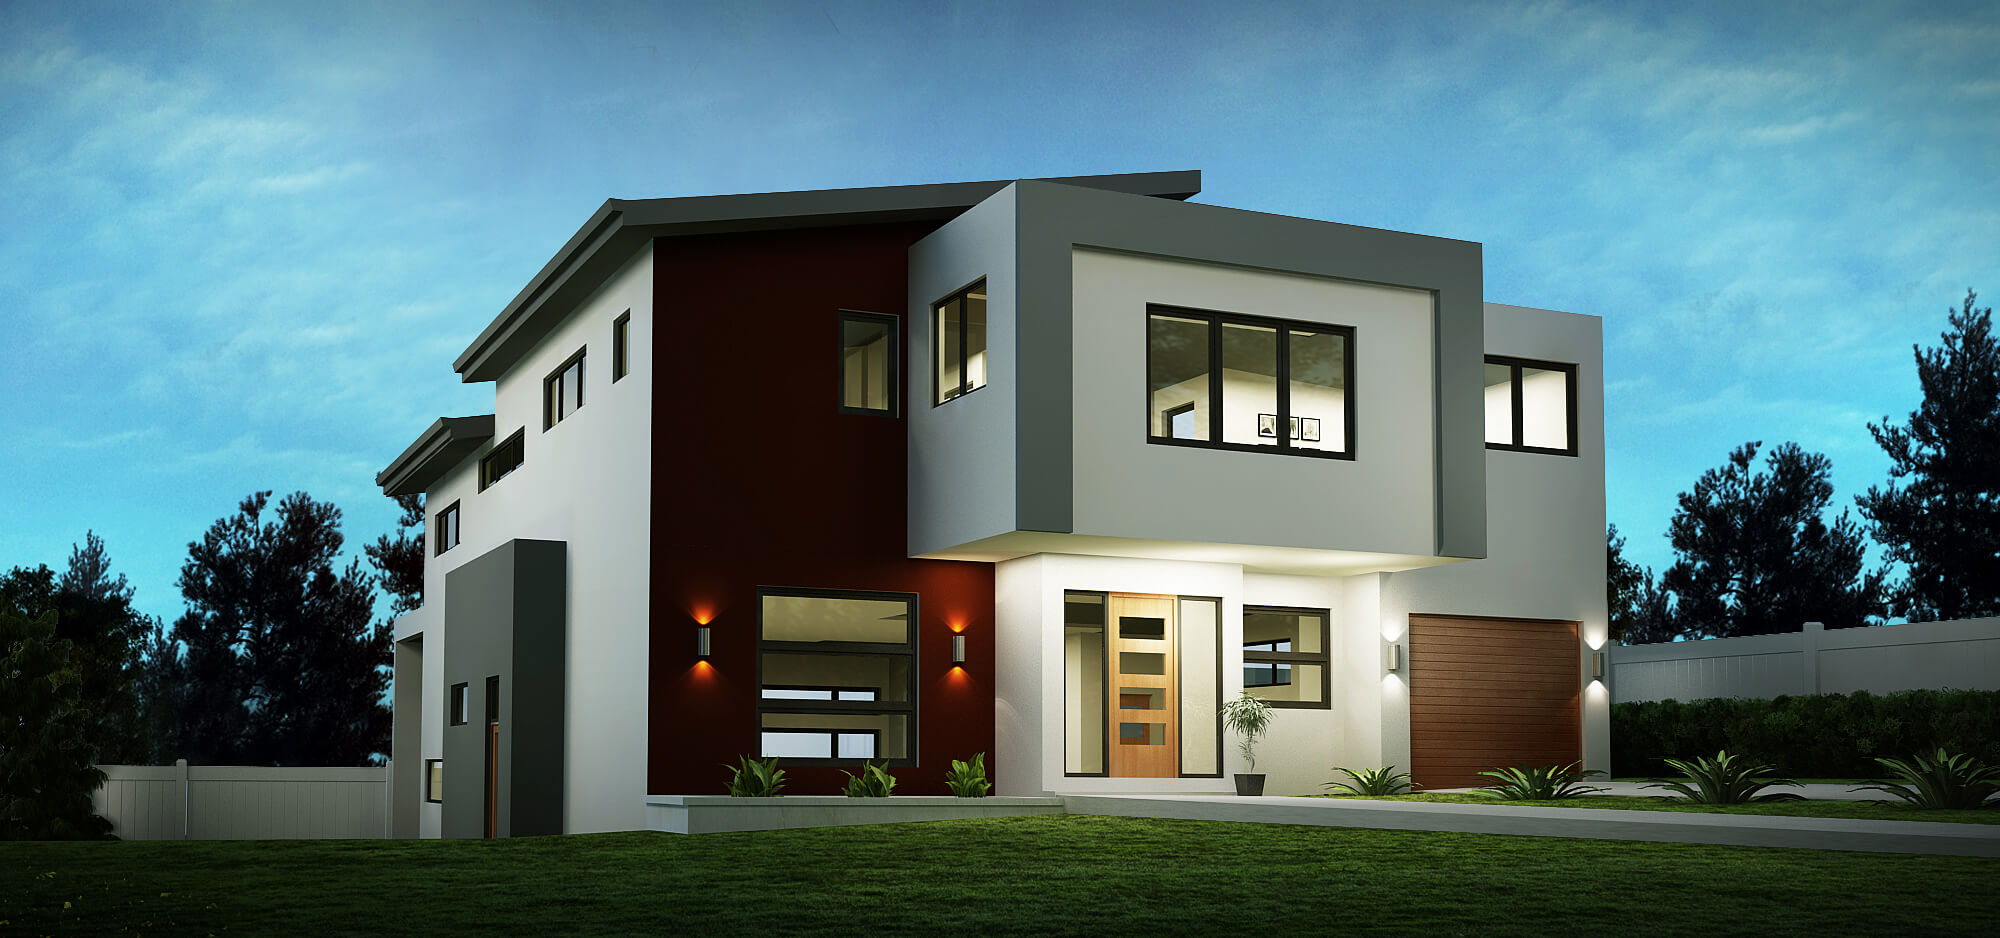 Sloping house block designs custom home designs for Custom house design